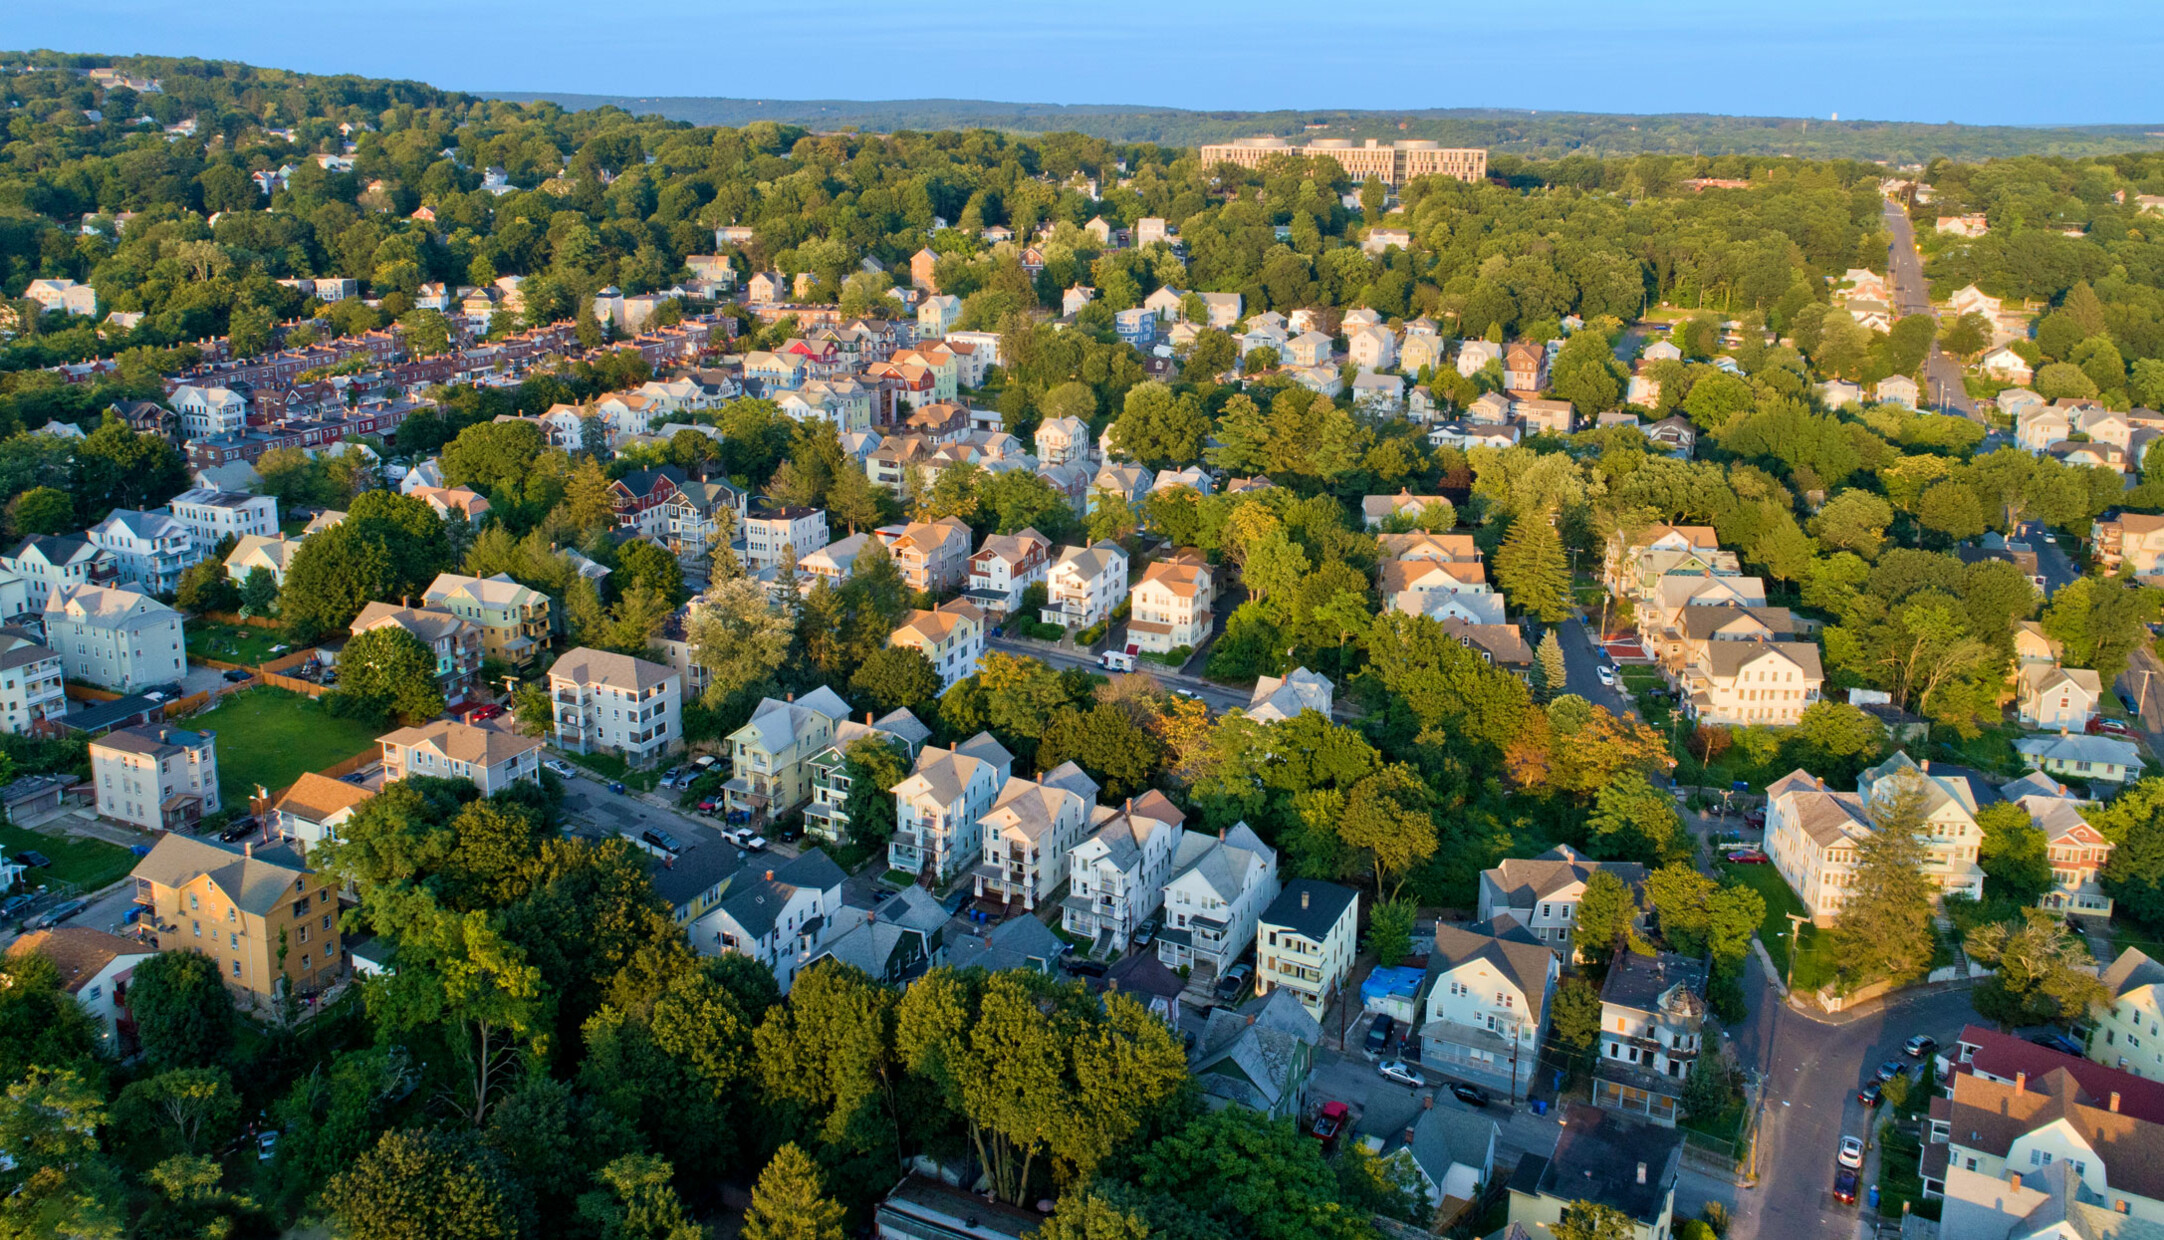 An aerial view of houses and streets in the Walnut Orange Walsh neighborhood in Waterbury